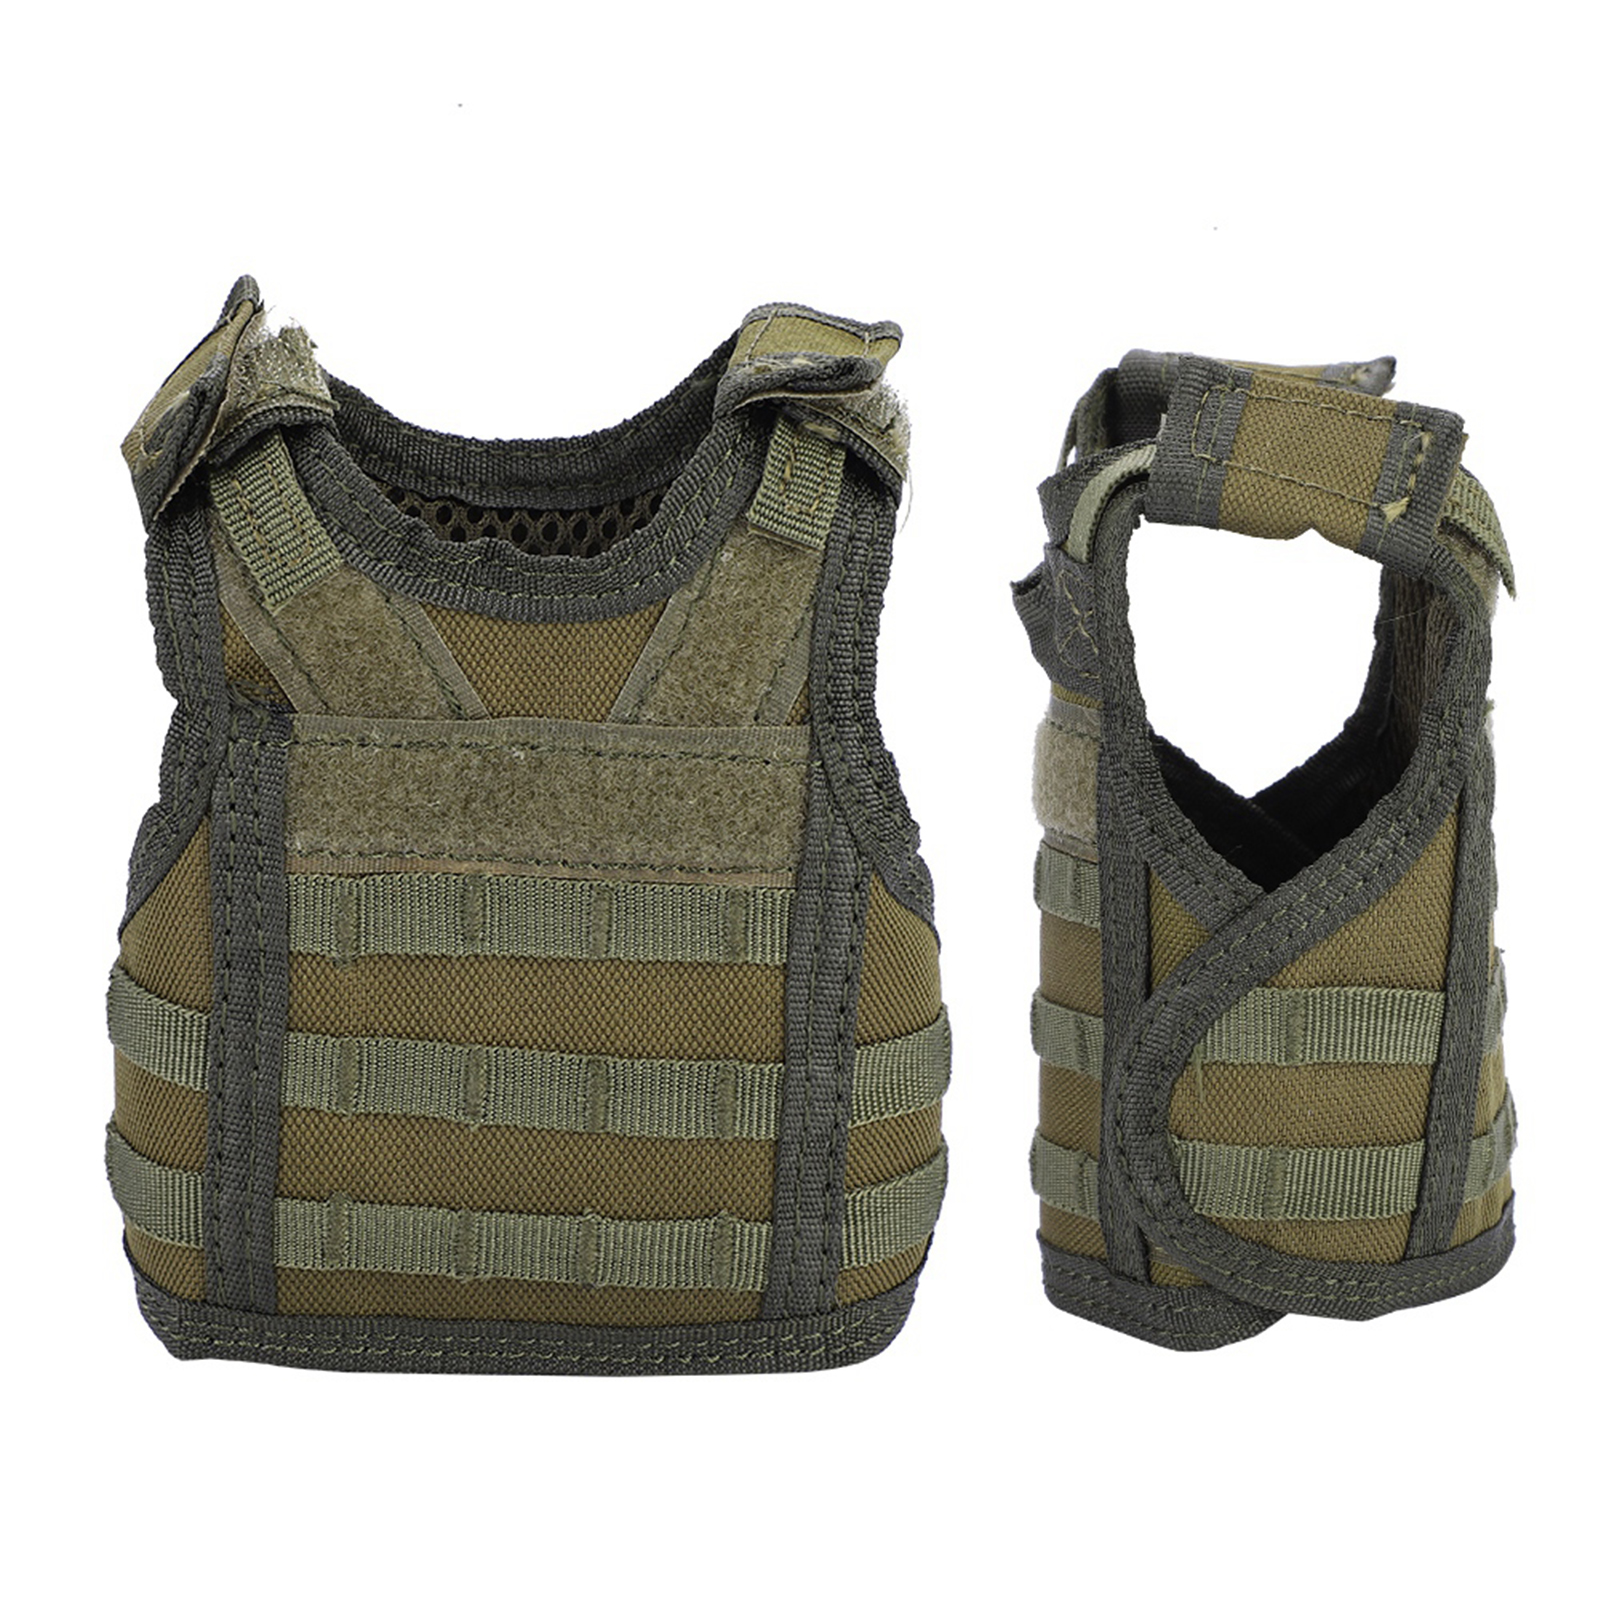 Mini-Military-Tactic-Beer-Water-Bottle-Can-Vest-Carrier-Holder-Beverage-Cover thumbnail 13